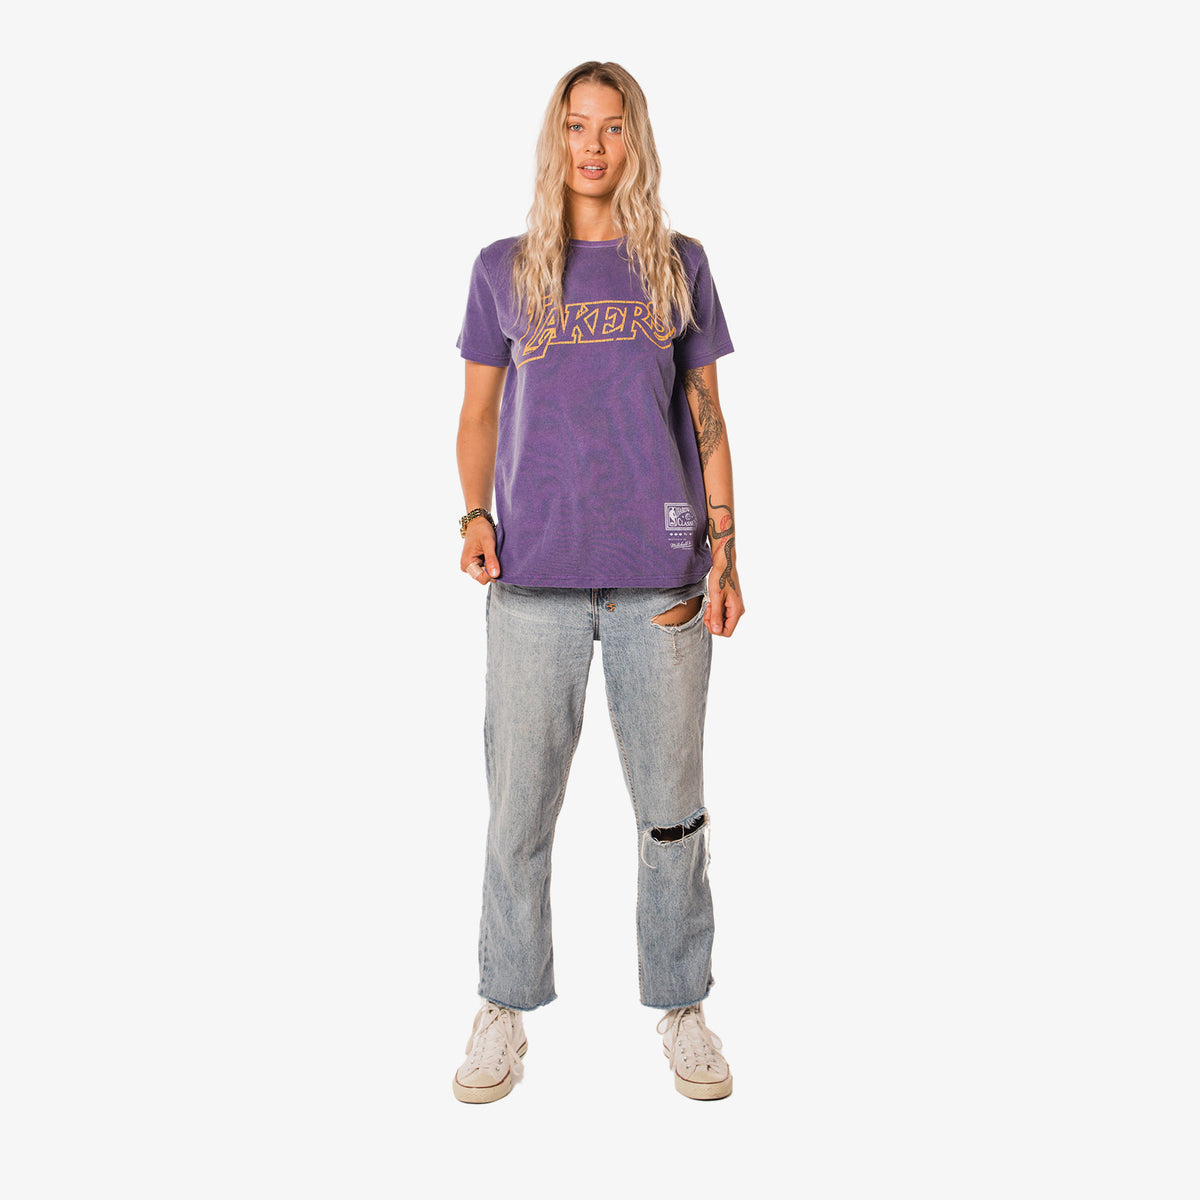 Los Angeles Lakers Women's Vintage Team Logo T-Shirt - Faded Purple